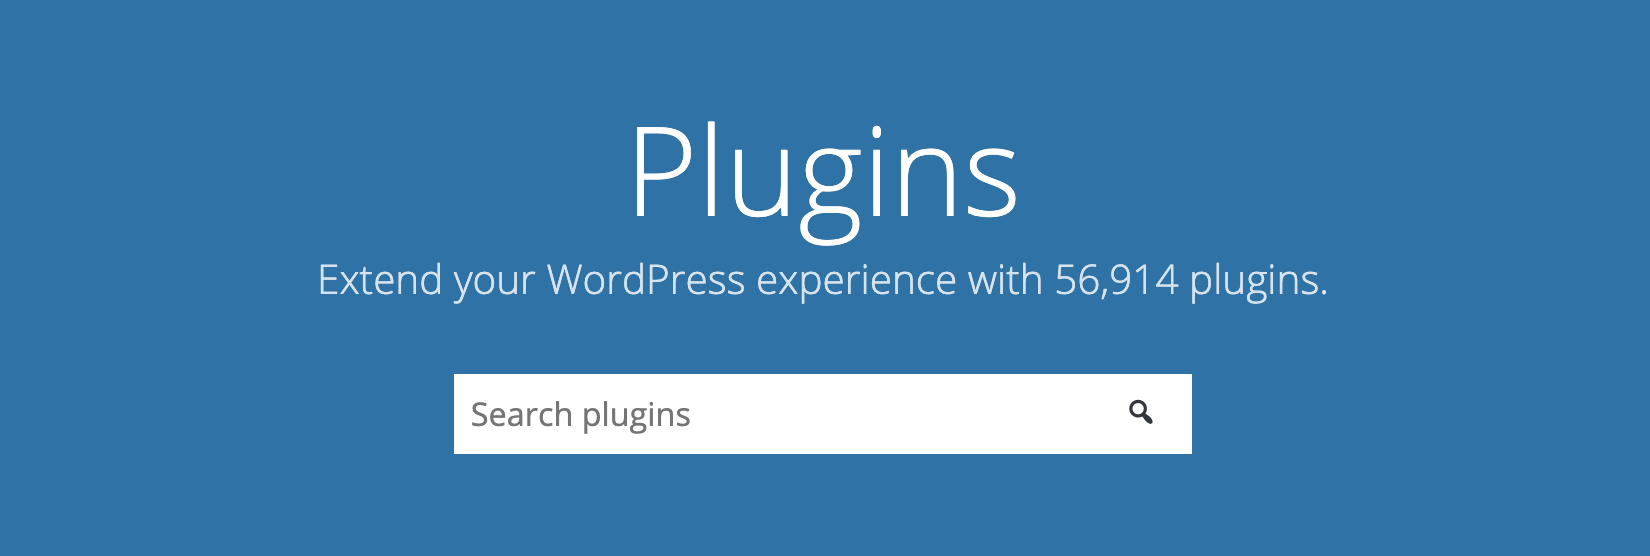 wordpress plugins landing page